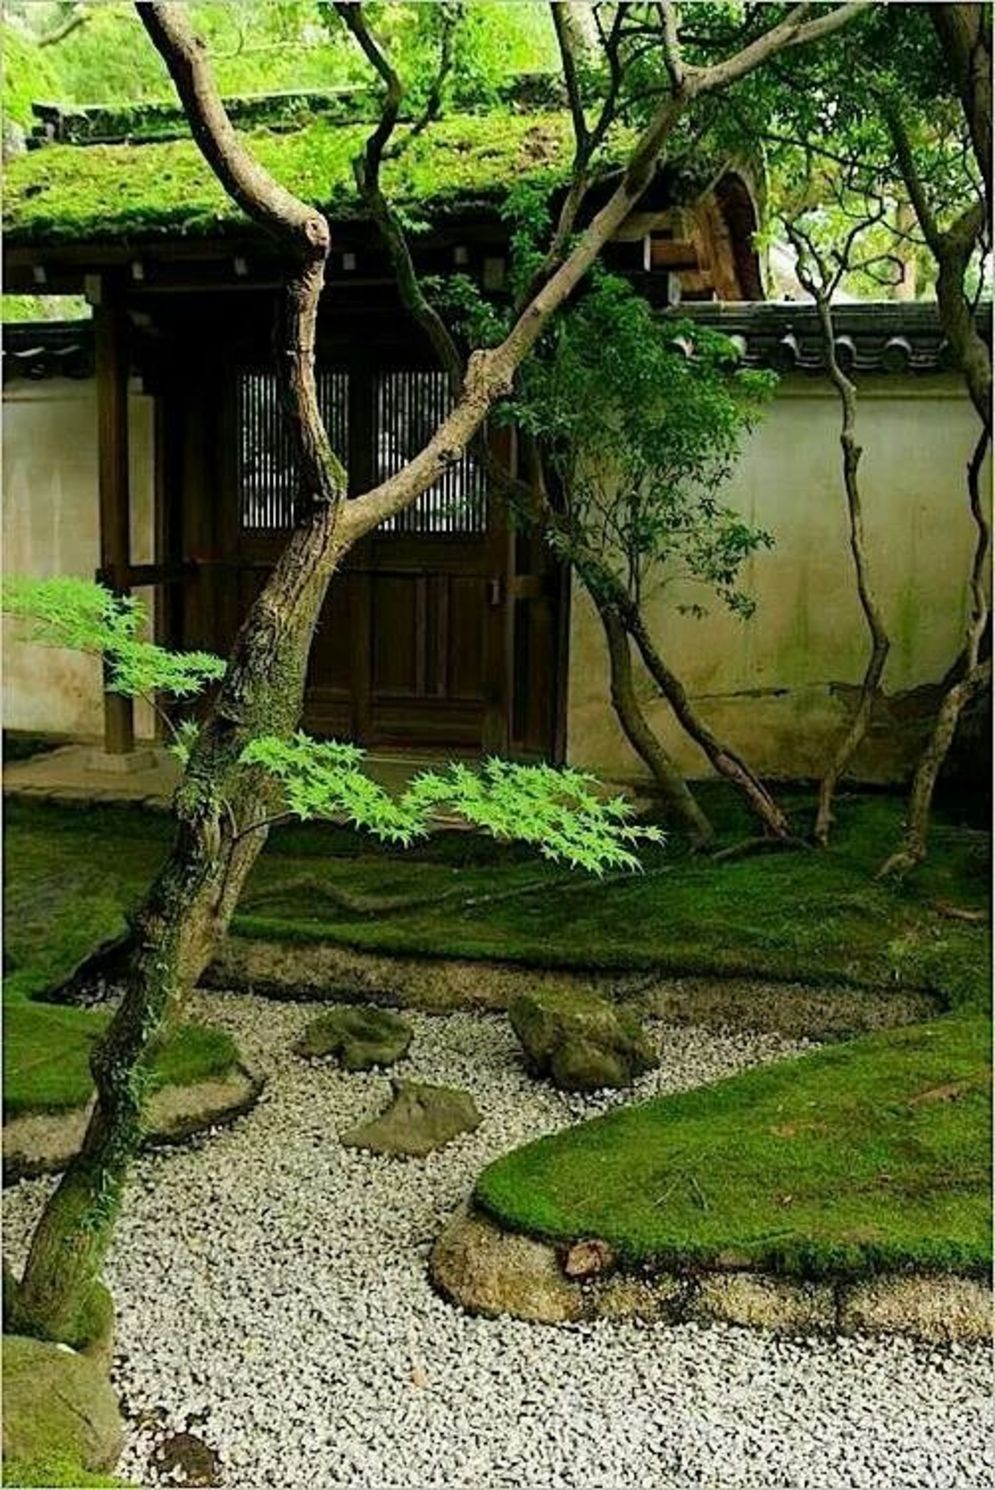 Beautiful Zen garden style with peaceful arrangements creating peaceful and harmonies display that will calm our mind Image 11